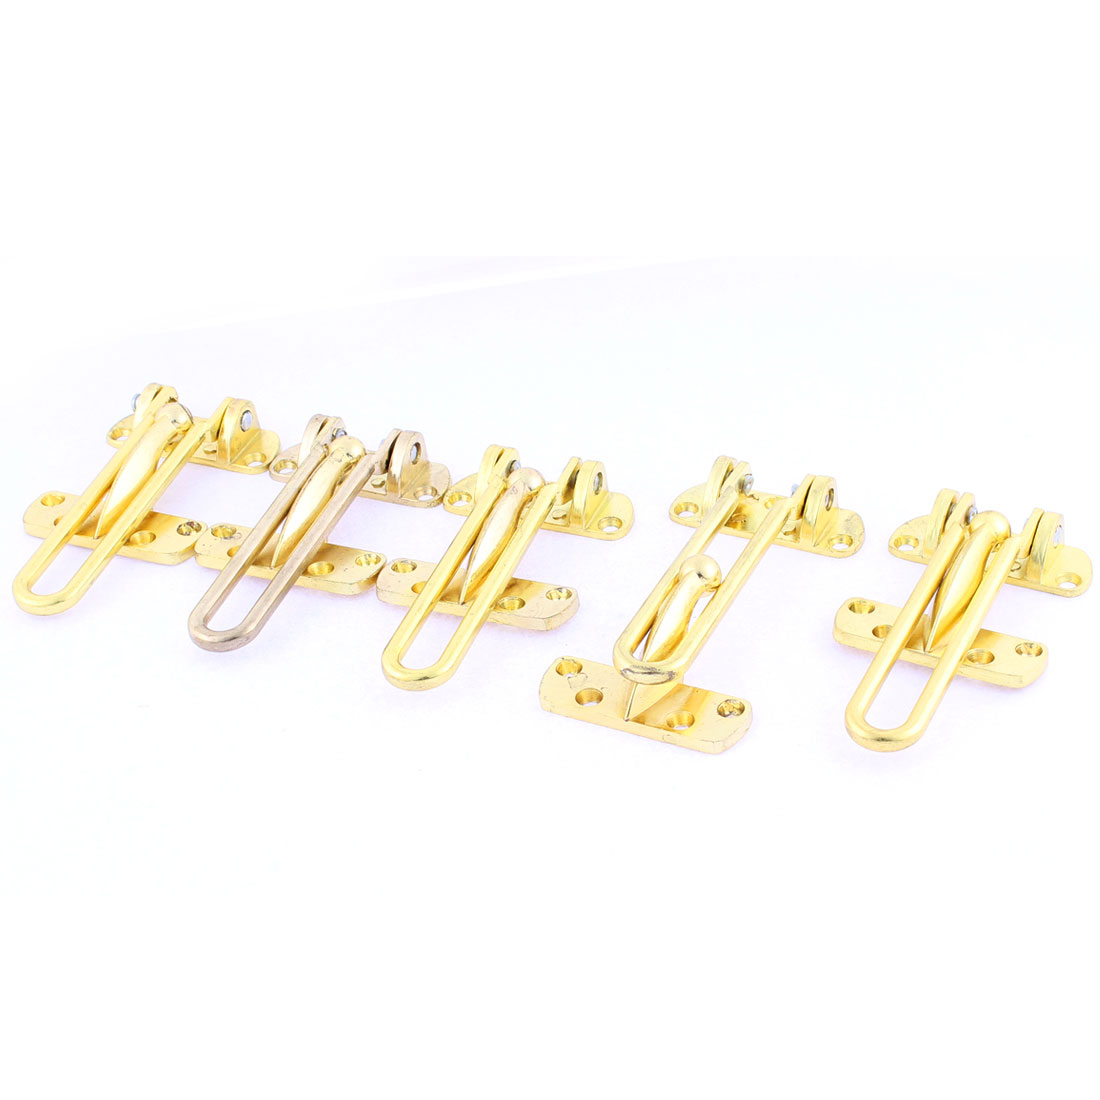 5 Pcs Home Metal Swing Arm Door Security Chain Locking Guard Latch Gold Tone